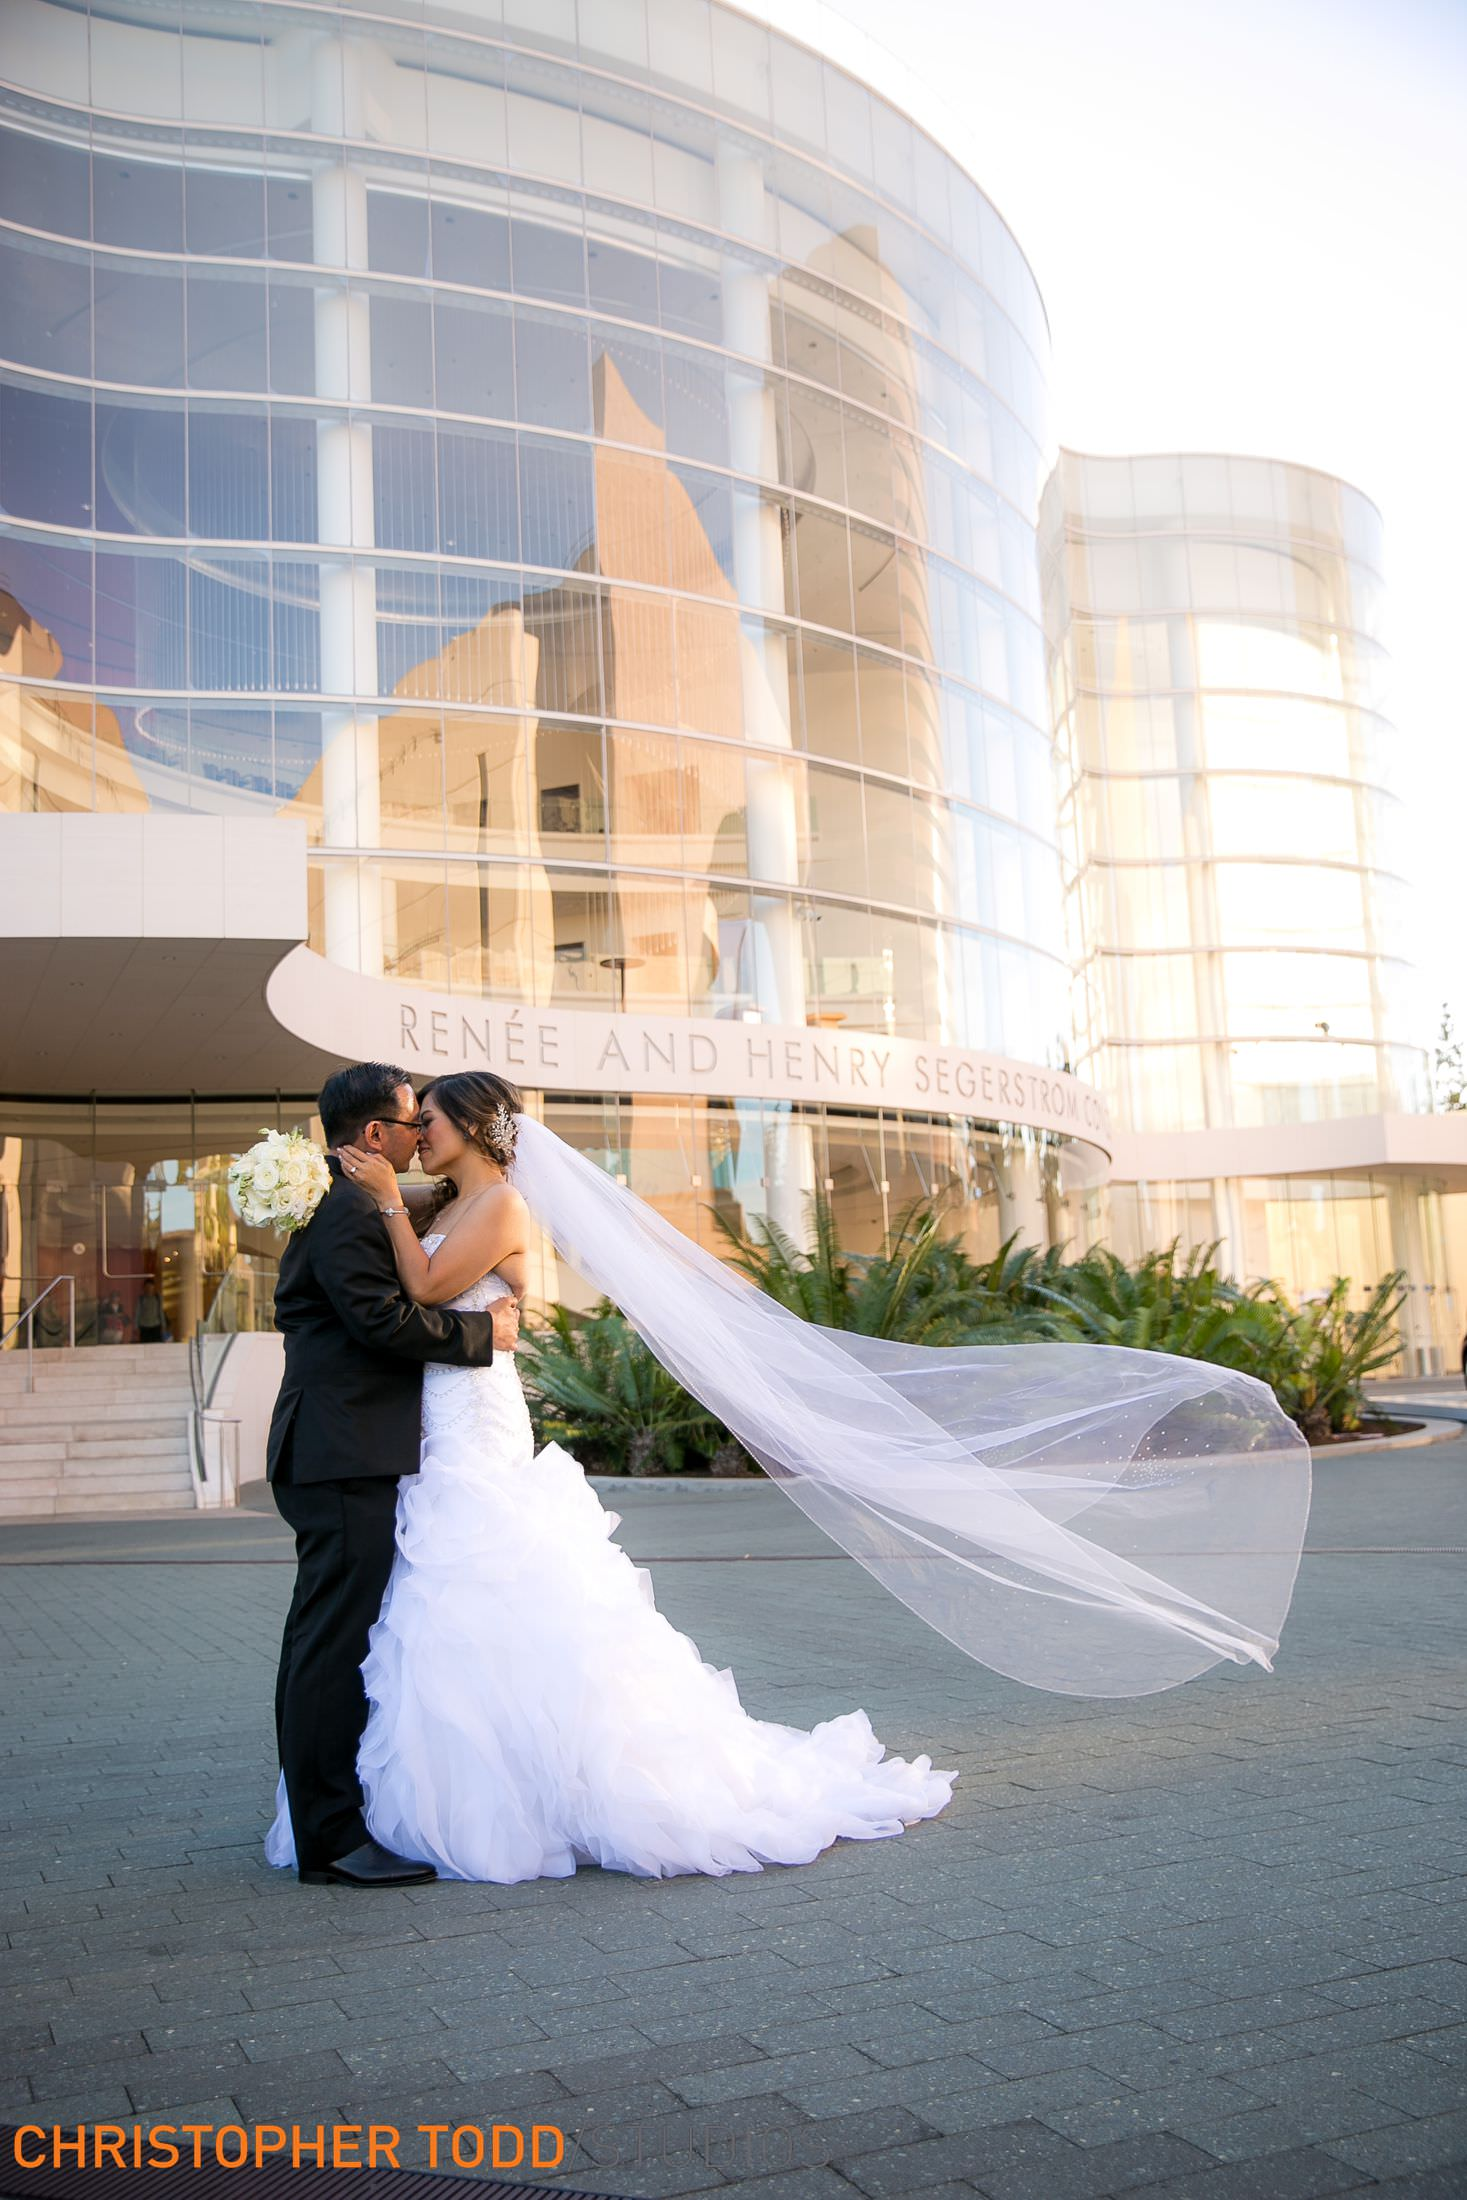 segerstrom concert hall in the background of the bride and groom portrait